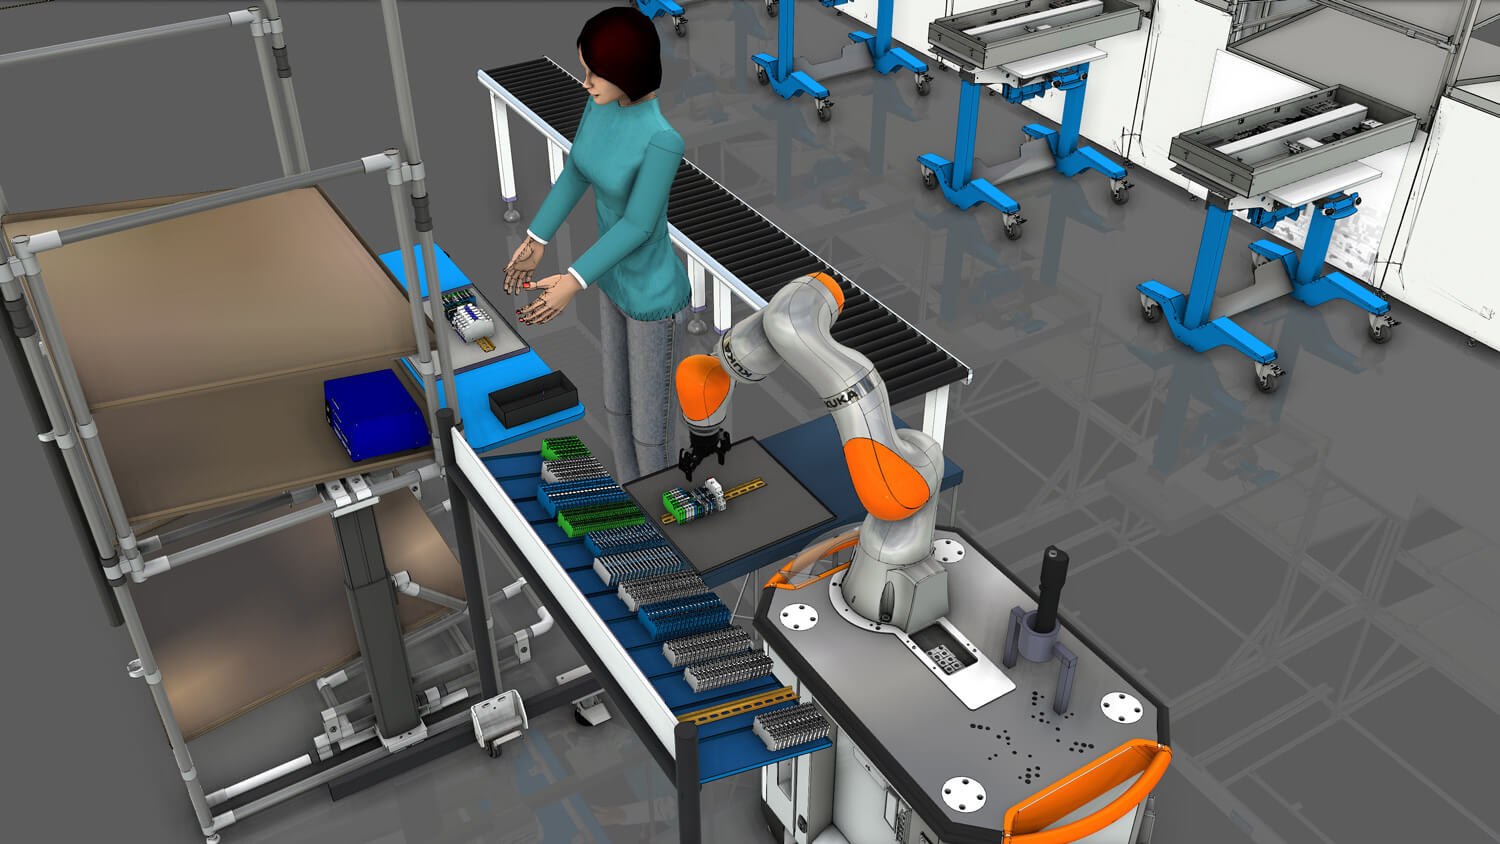 Simulation of a person working together with a robot at a production line